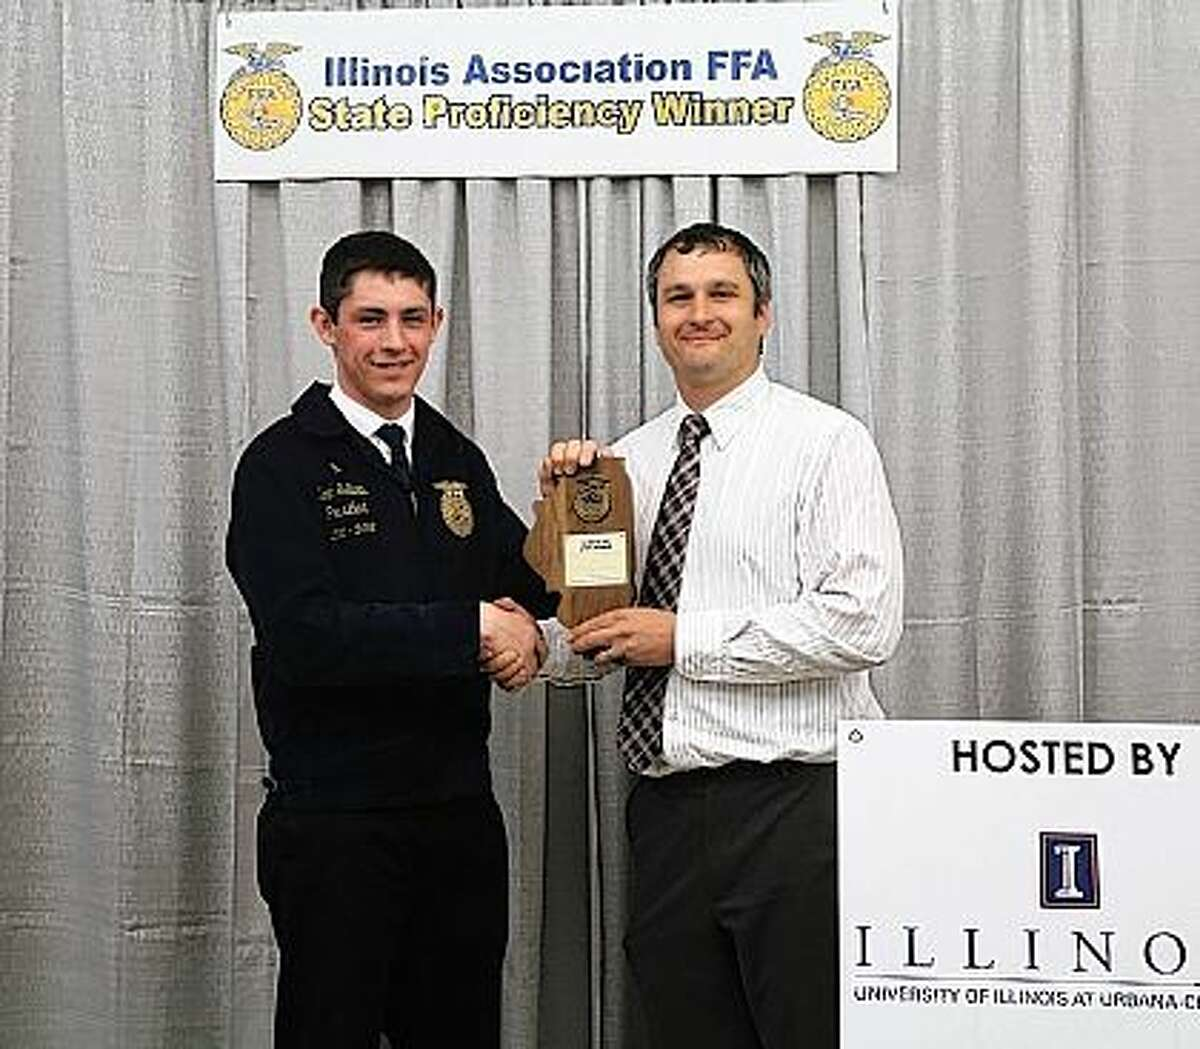 Noah Sellars was selected as the state FFA proficiency winner in home and community development for his volunteer work with the Winchester Emergency Medical Service. Sellars is a member of the Winchester FFA Chapter. Illinois FFA recognizes students in 52 different areas based on their work-based learning, also known as Supervised Agriculture Experiences or SAE. Sellars was selected as the state winner by a committee of agricultural industry representatives and teachers knowledgeable in this work-based area. Receiving this honor now makes Sellars eligible to compete in the national FFA awards selection process in July. He was previously chosen as the chapter, section and district award winner in this area. A senior at Winchester High School, Sellars has been involved in FFA for four years and serves as president of Winchester's FFA Chapter. He is the son of Andy and Jennifer Sellars of Winchester and plans to attend the University of Illinois Urbana-Champaign this fall.